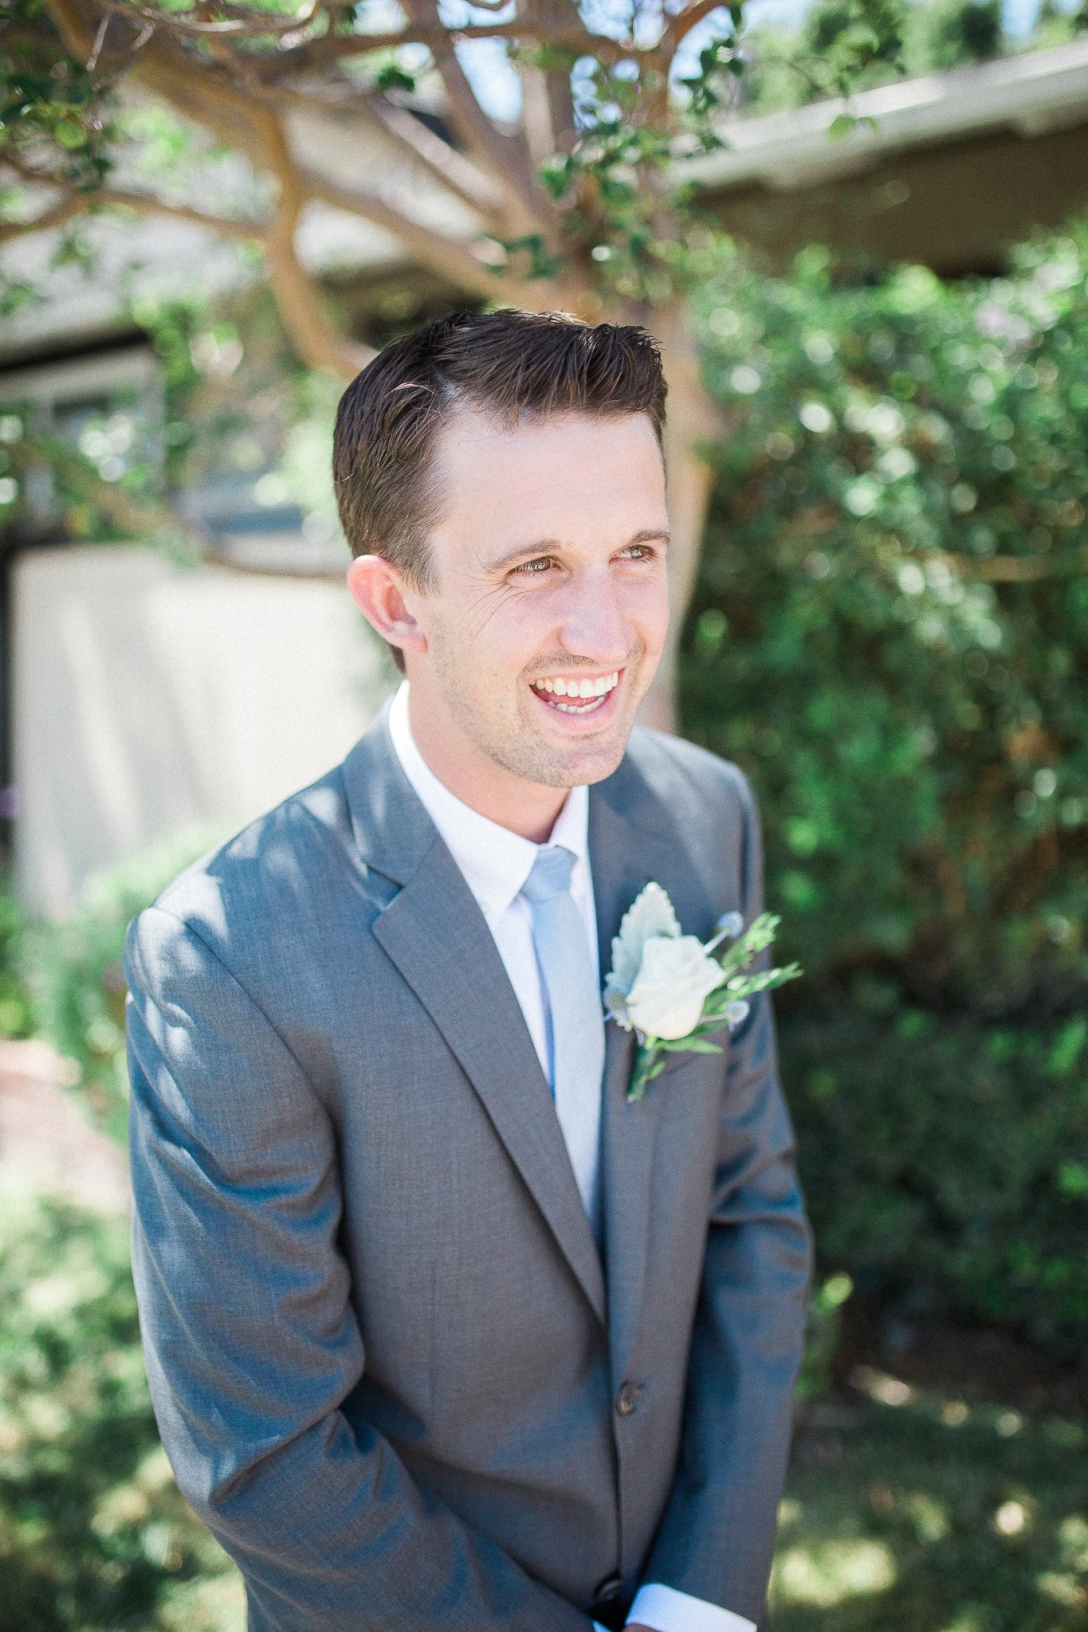 Katy-Steve-Wedding-Tustin-California-23